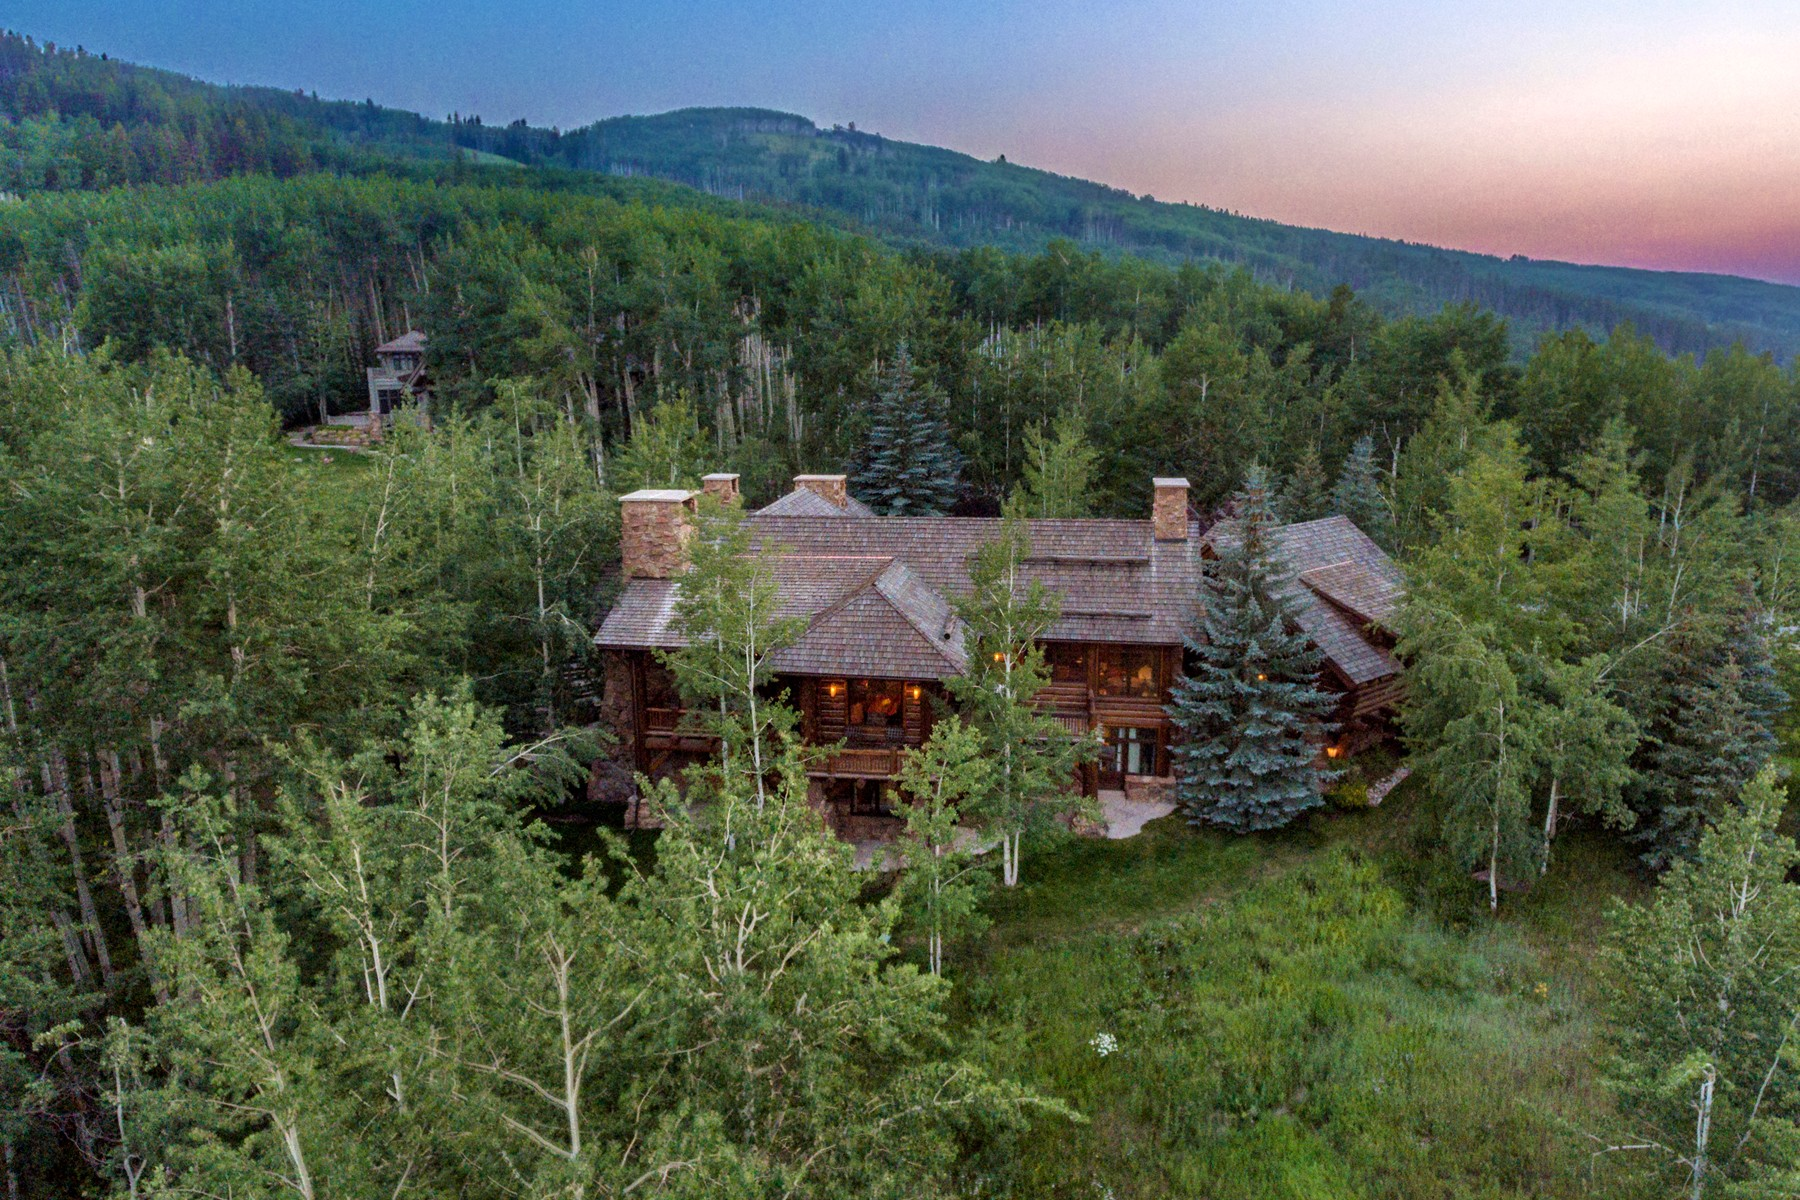 Casa Unifamiliar por un Venta en Private Ski-in/Ski-out 6-bedroom/6.5-bath Custom Log Home 2291 Daybreak Ridge Beaver Creek, Colorado 81620 Estados Unidos